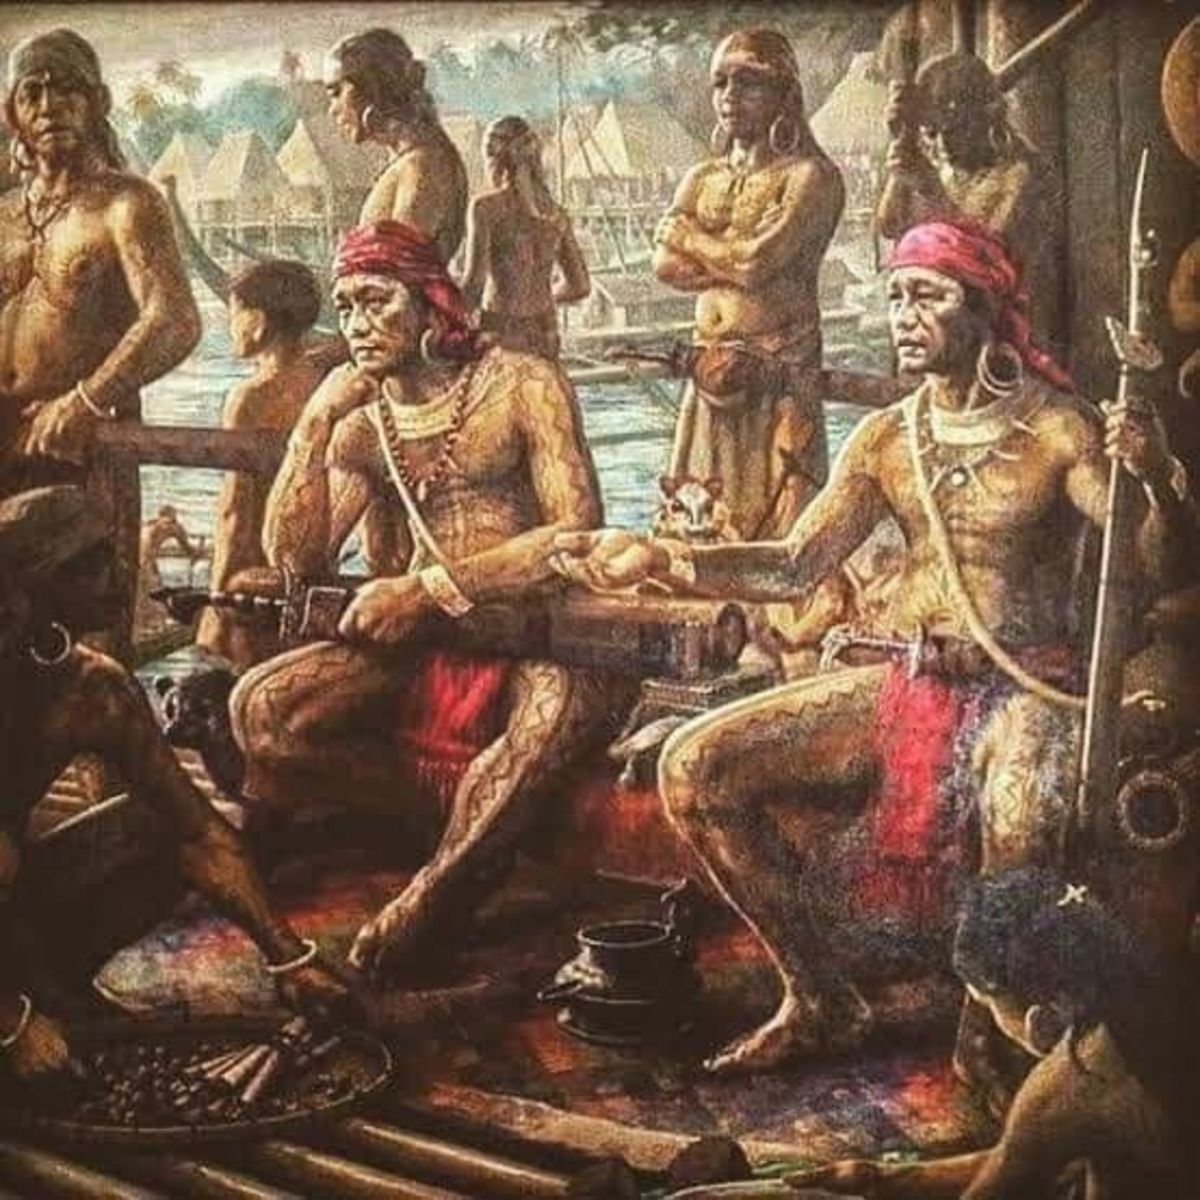 Tabo by S.A. Tutor, depicting the brothers Da'Ilisan and Pagbuaya who ruled the ancient kingdom of Dapitan (now Dauis and Tagbilaran in Bohol) in pre-colonial Visayas.